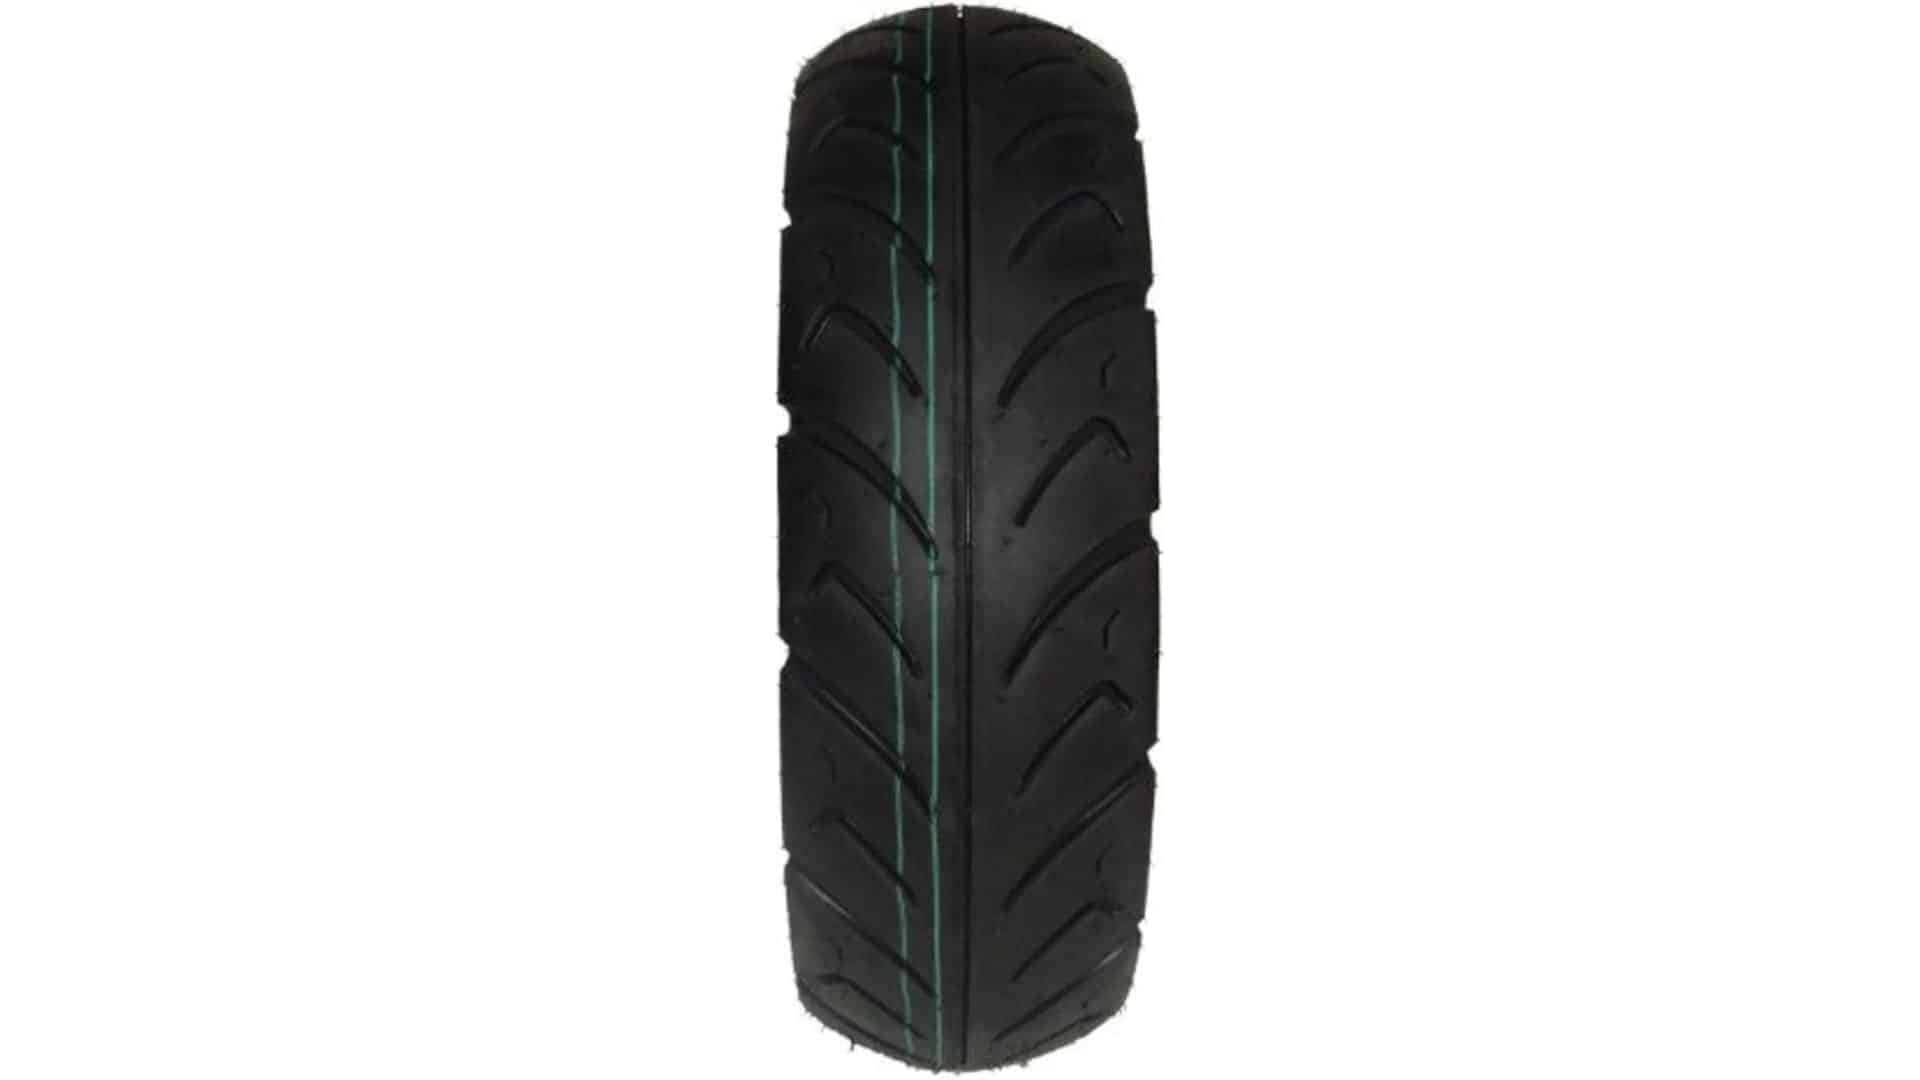 eScooter Tire 3.5″ x 10″